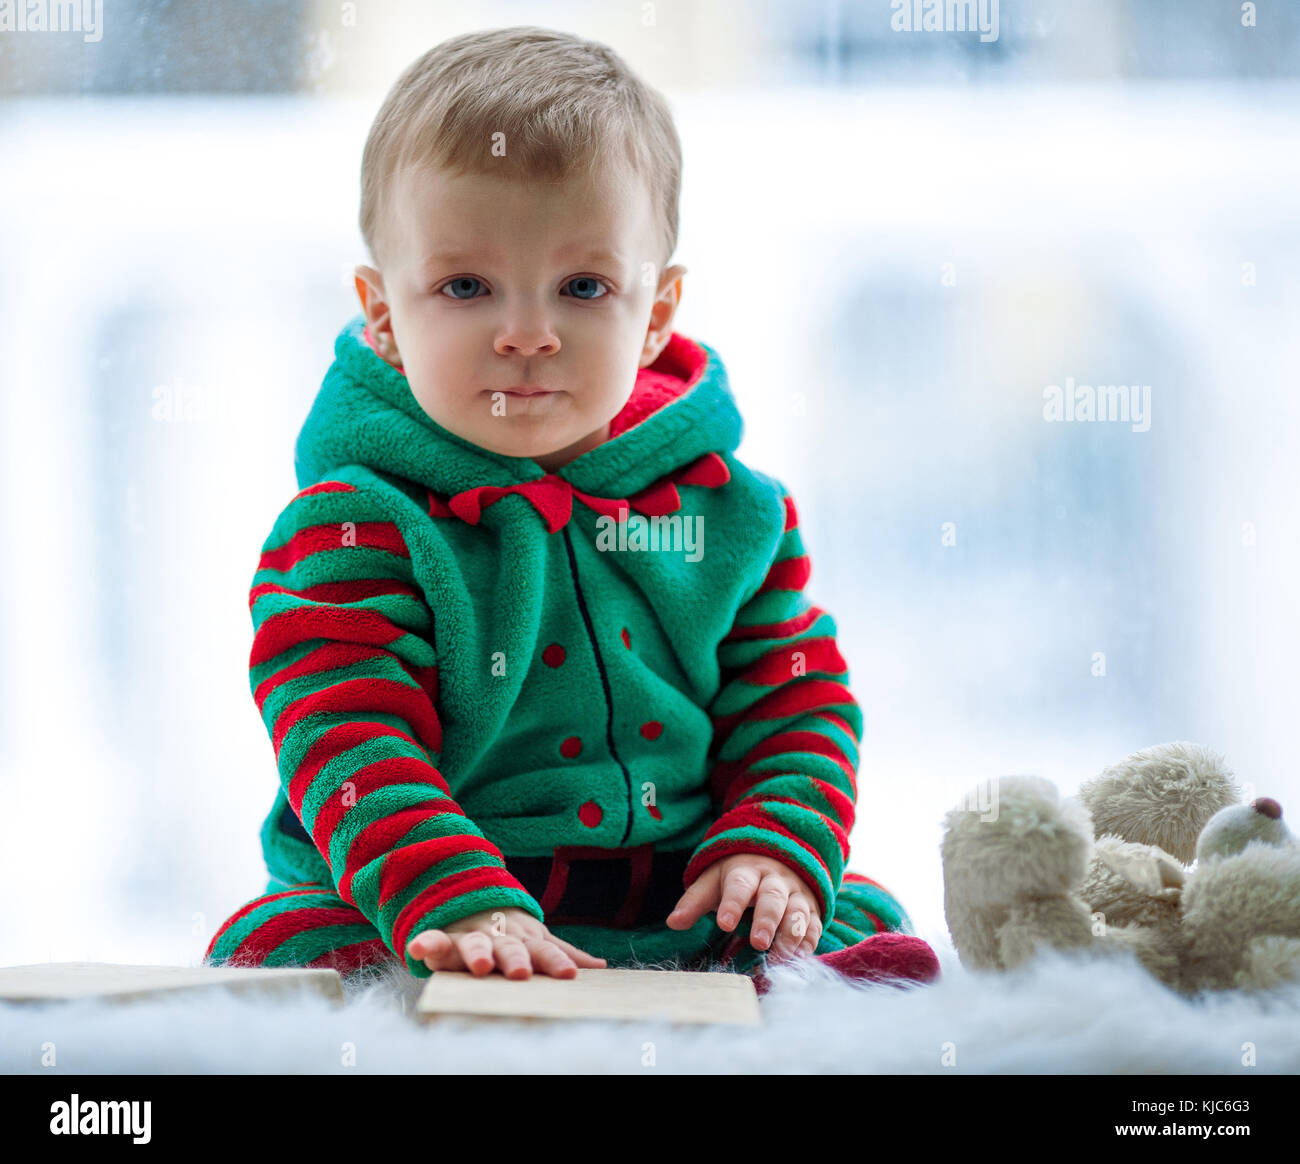 Little boy in red and green rompers with teddy bear sits on background of window. - Stock Image